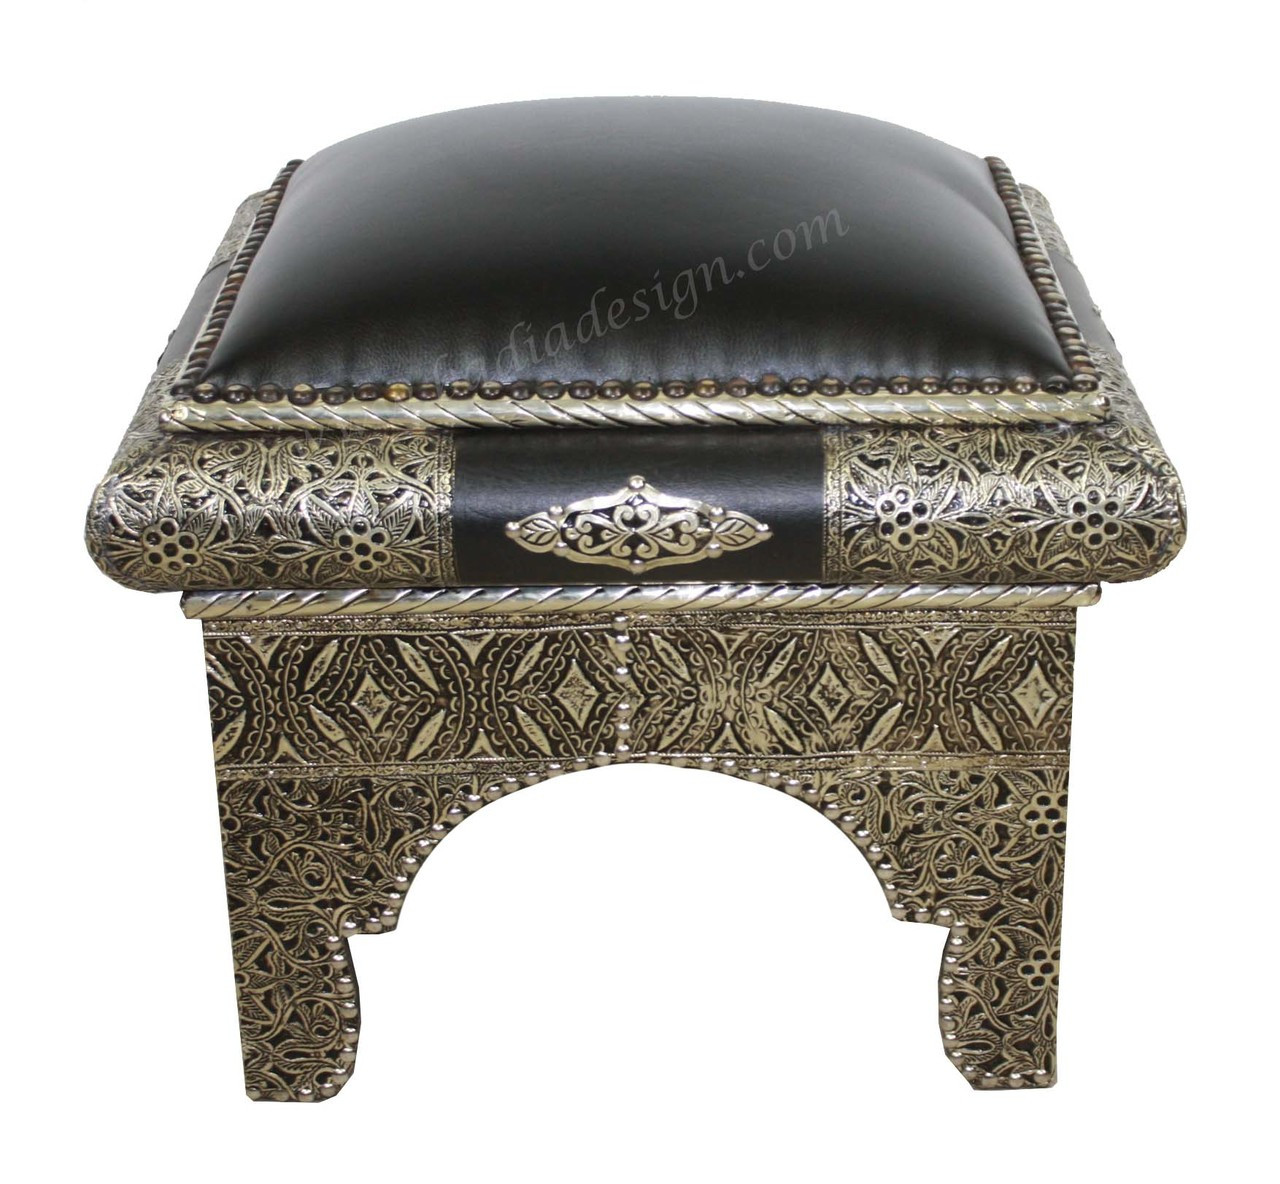 Swell Square Metal And Hard Black Leather Ottoman Ml Ch015 Squirreltailoven Fun Painted Chair Ideas Images Squirreltailovenorg